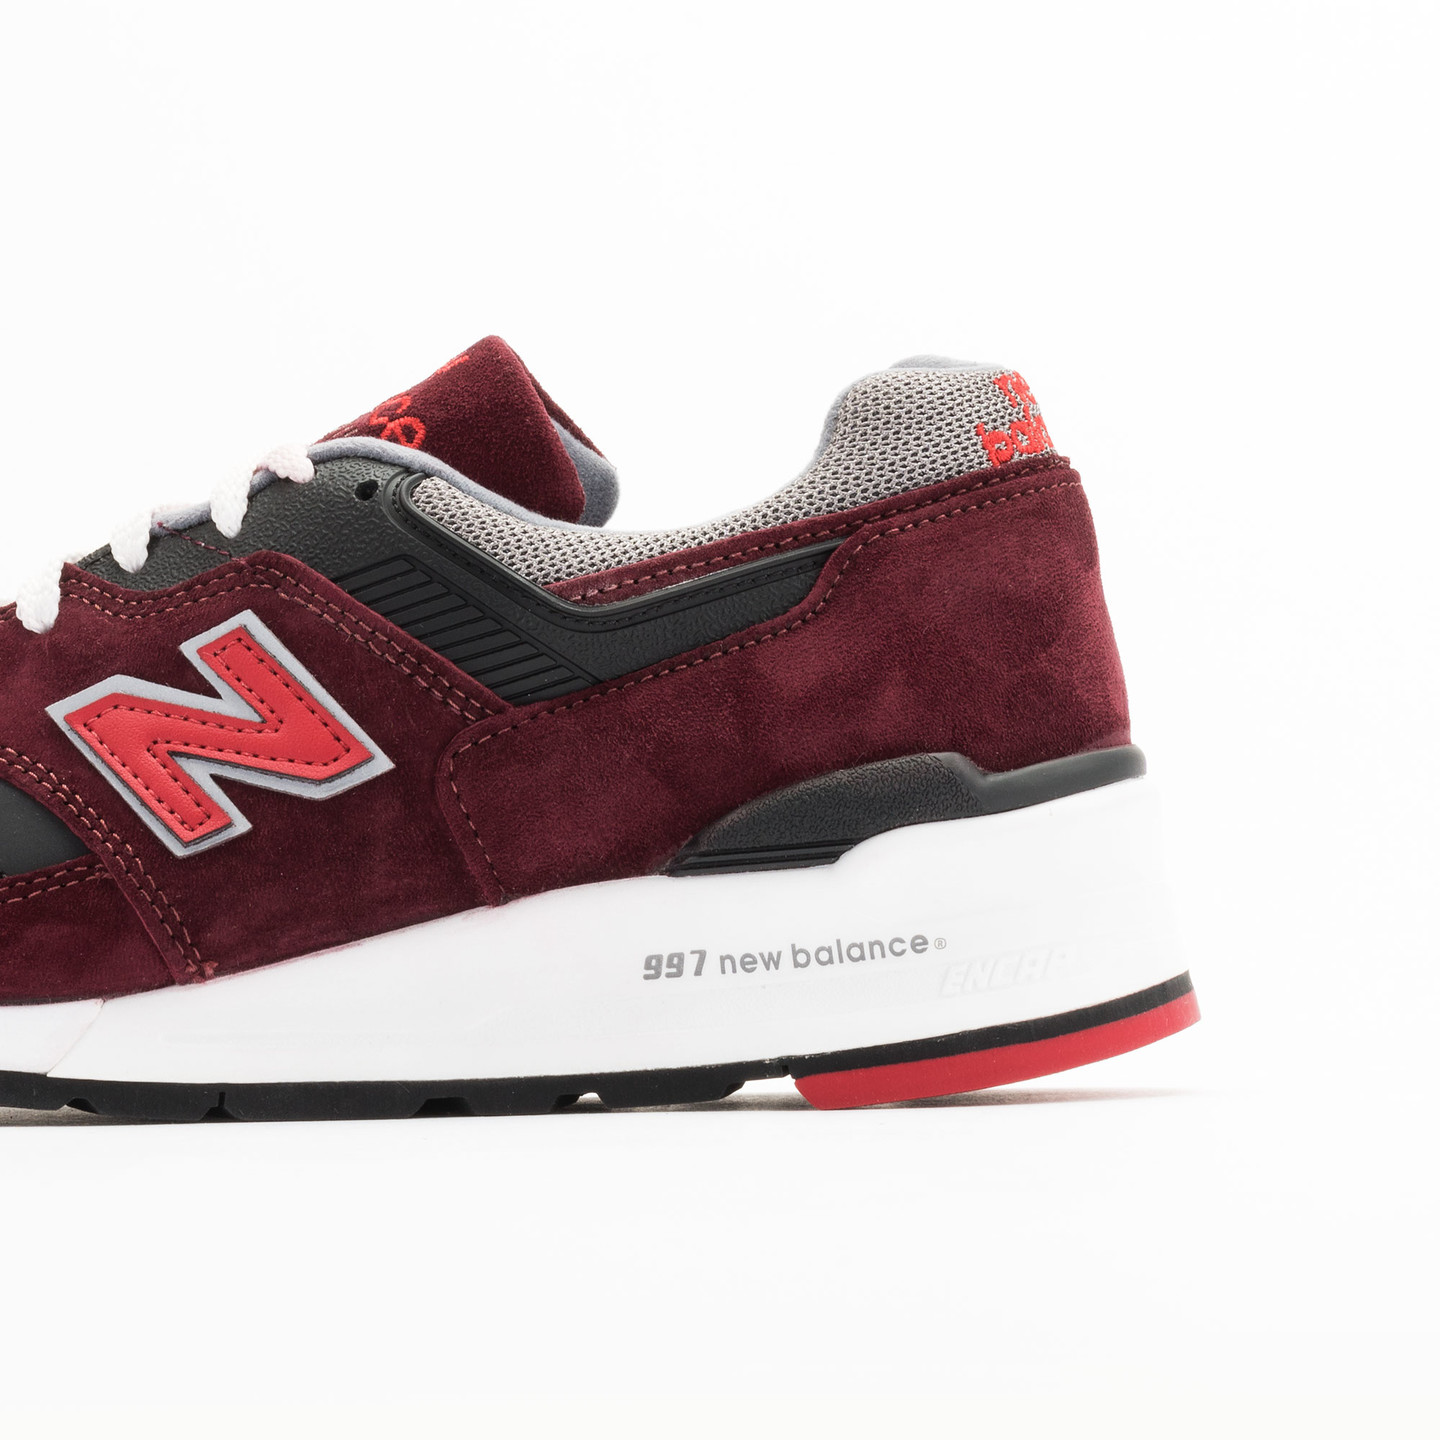 New Balance M997 CRG - Made in USA Brick Red / Black / Grey M997CRG-45